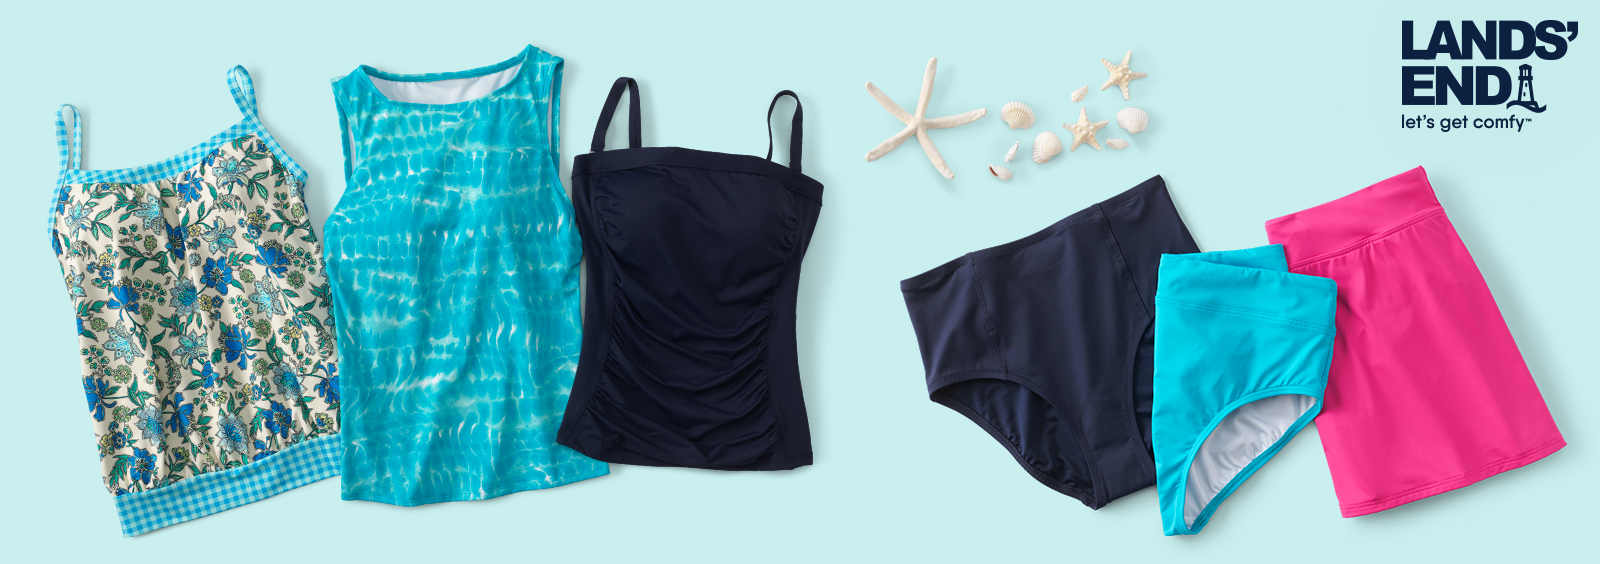 How to Shop for Modest Swimsuits With Your Teenagers